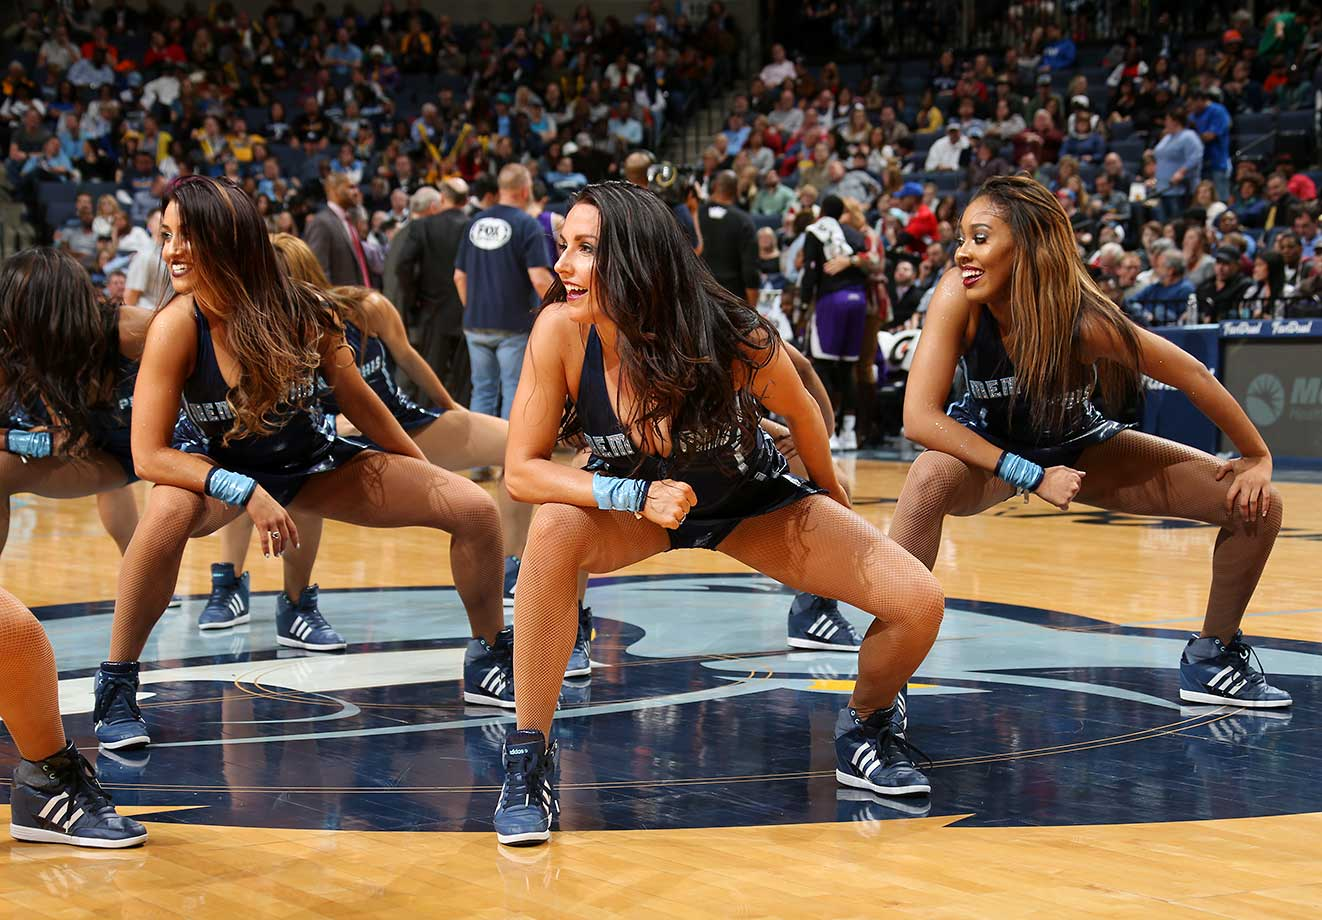 The Memphis Grizzlies dance team performs during the game against the Sacramento Kings.